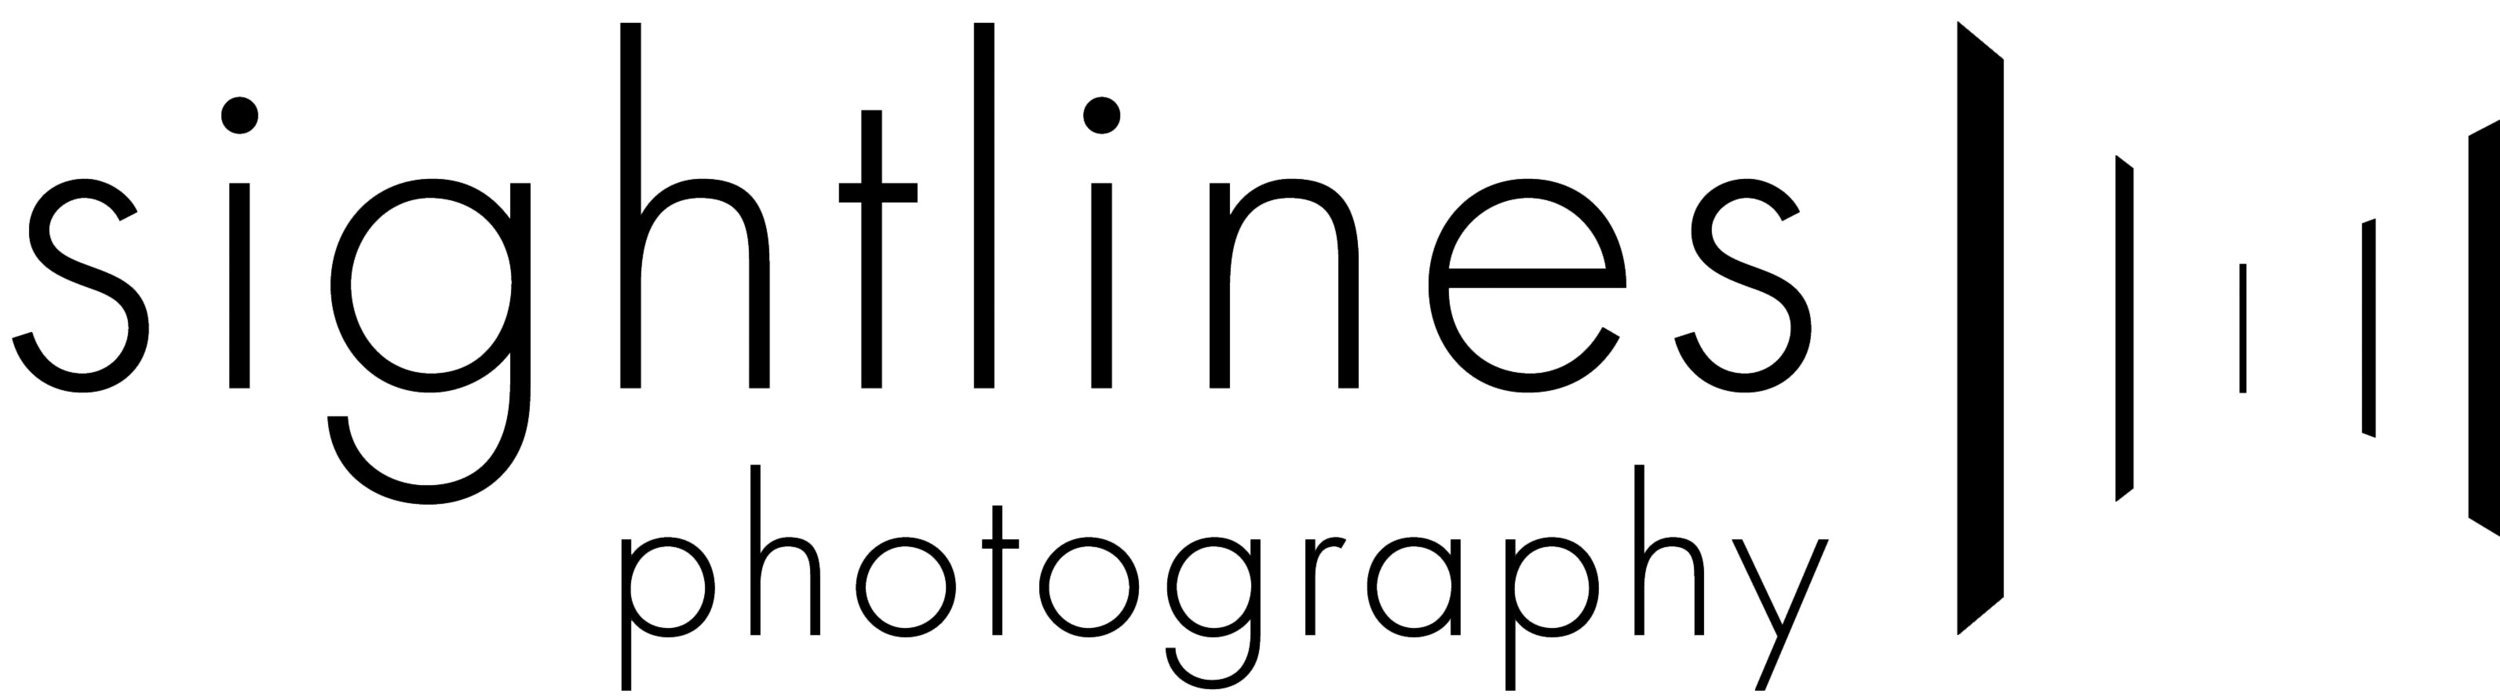 sightlines logo_BlackOnWhite.jpg